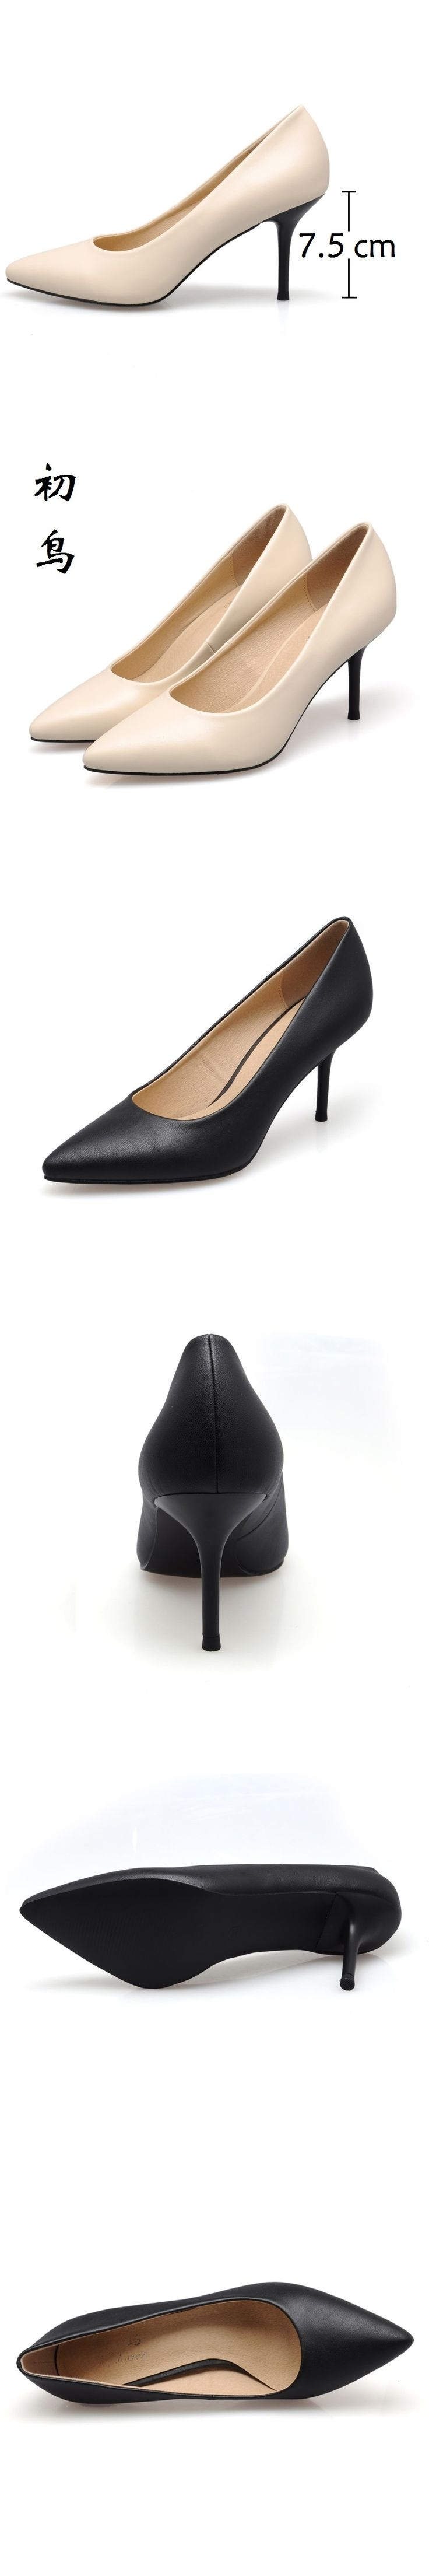 46 best Women s Shoes images on Pinterest